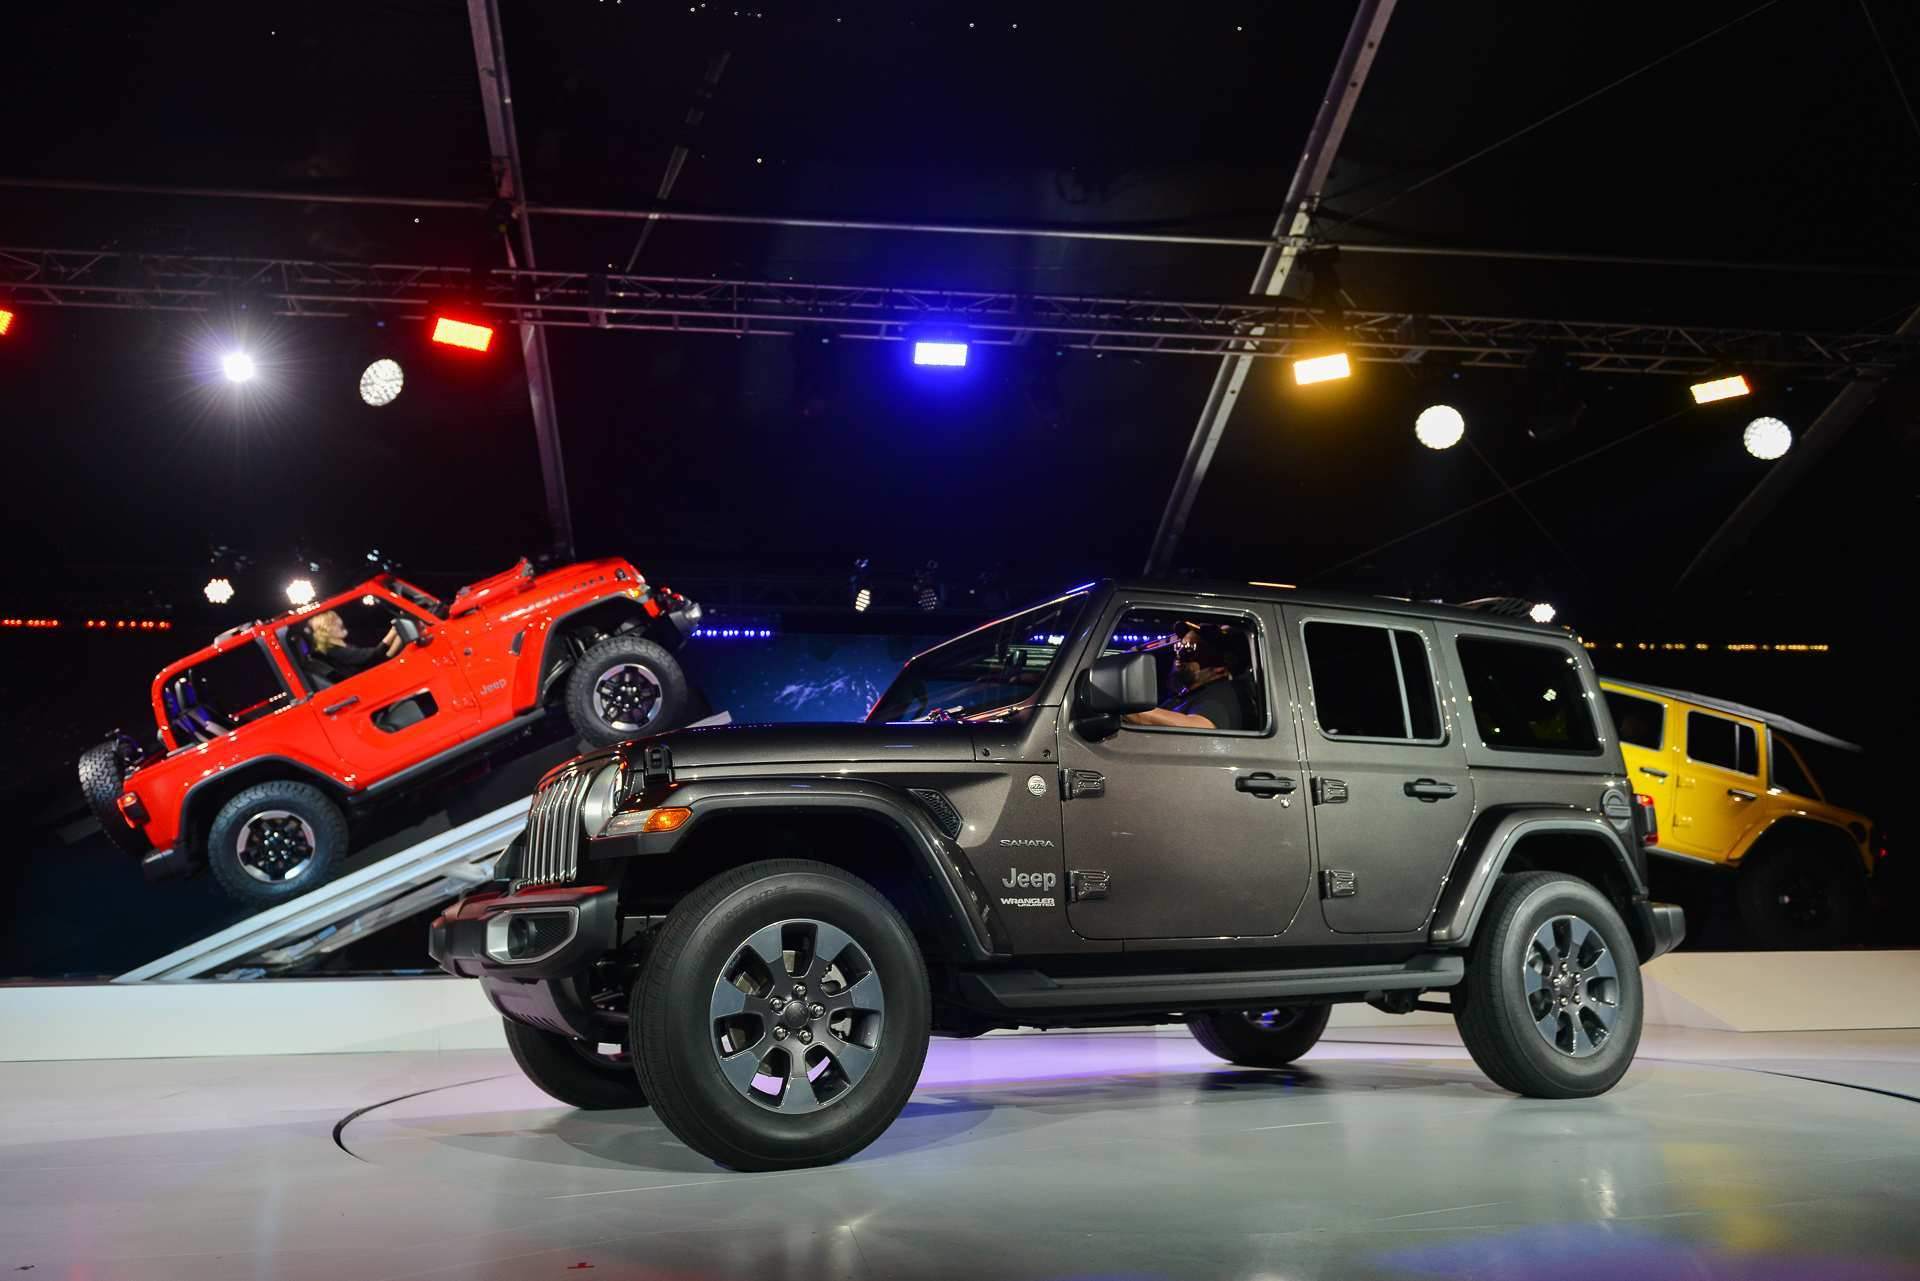 40 All New Jeep In 2020 Pictures by Jeep In 2020